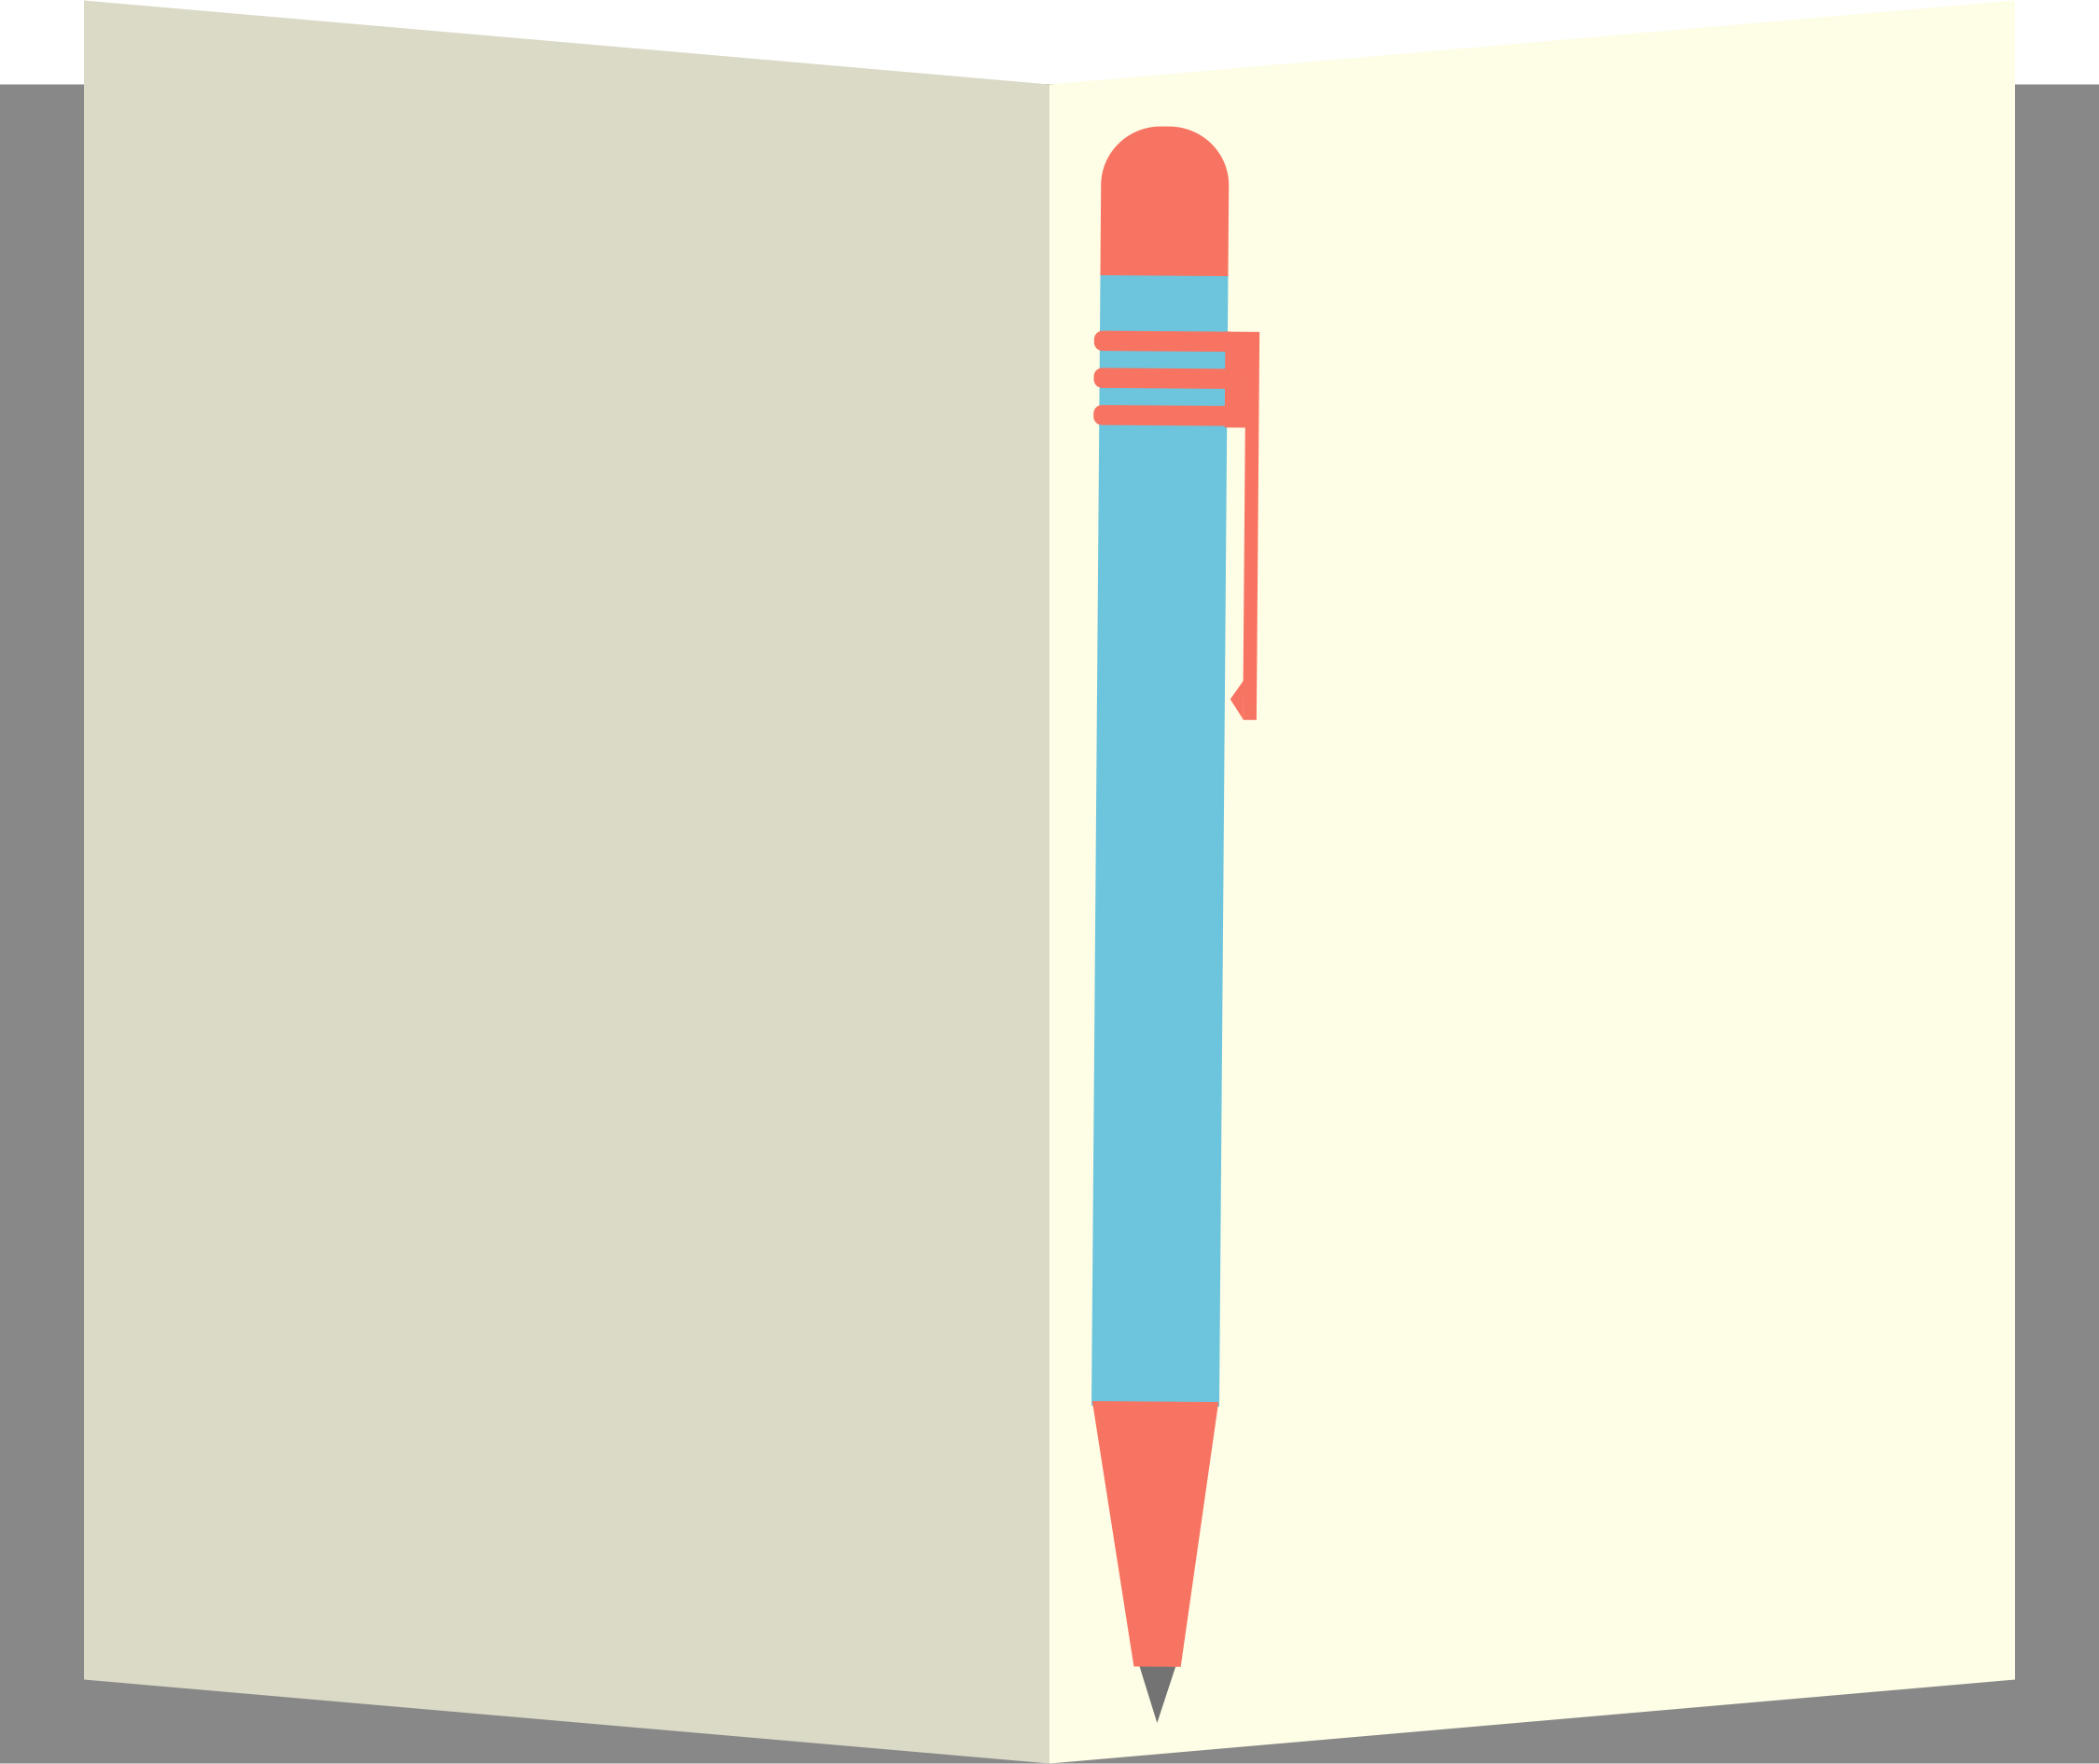 Notebook clipart notebook pen. Notepad big image png